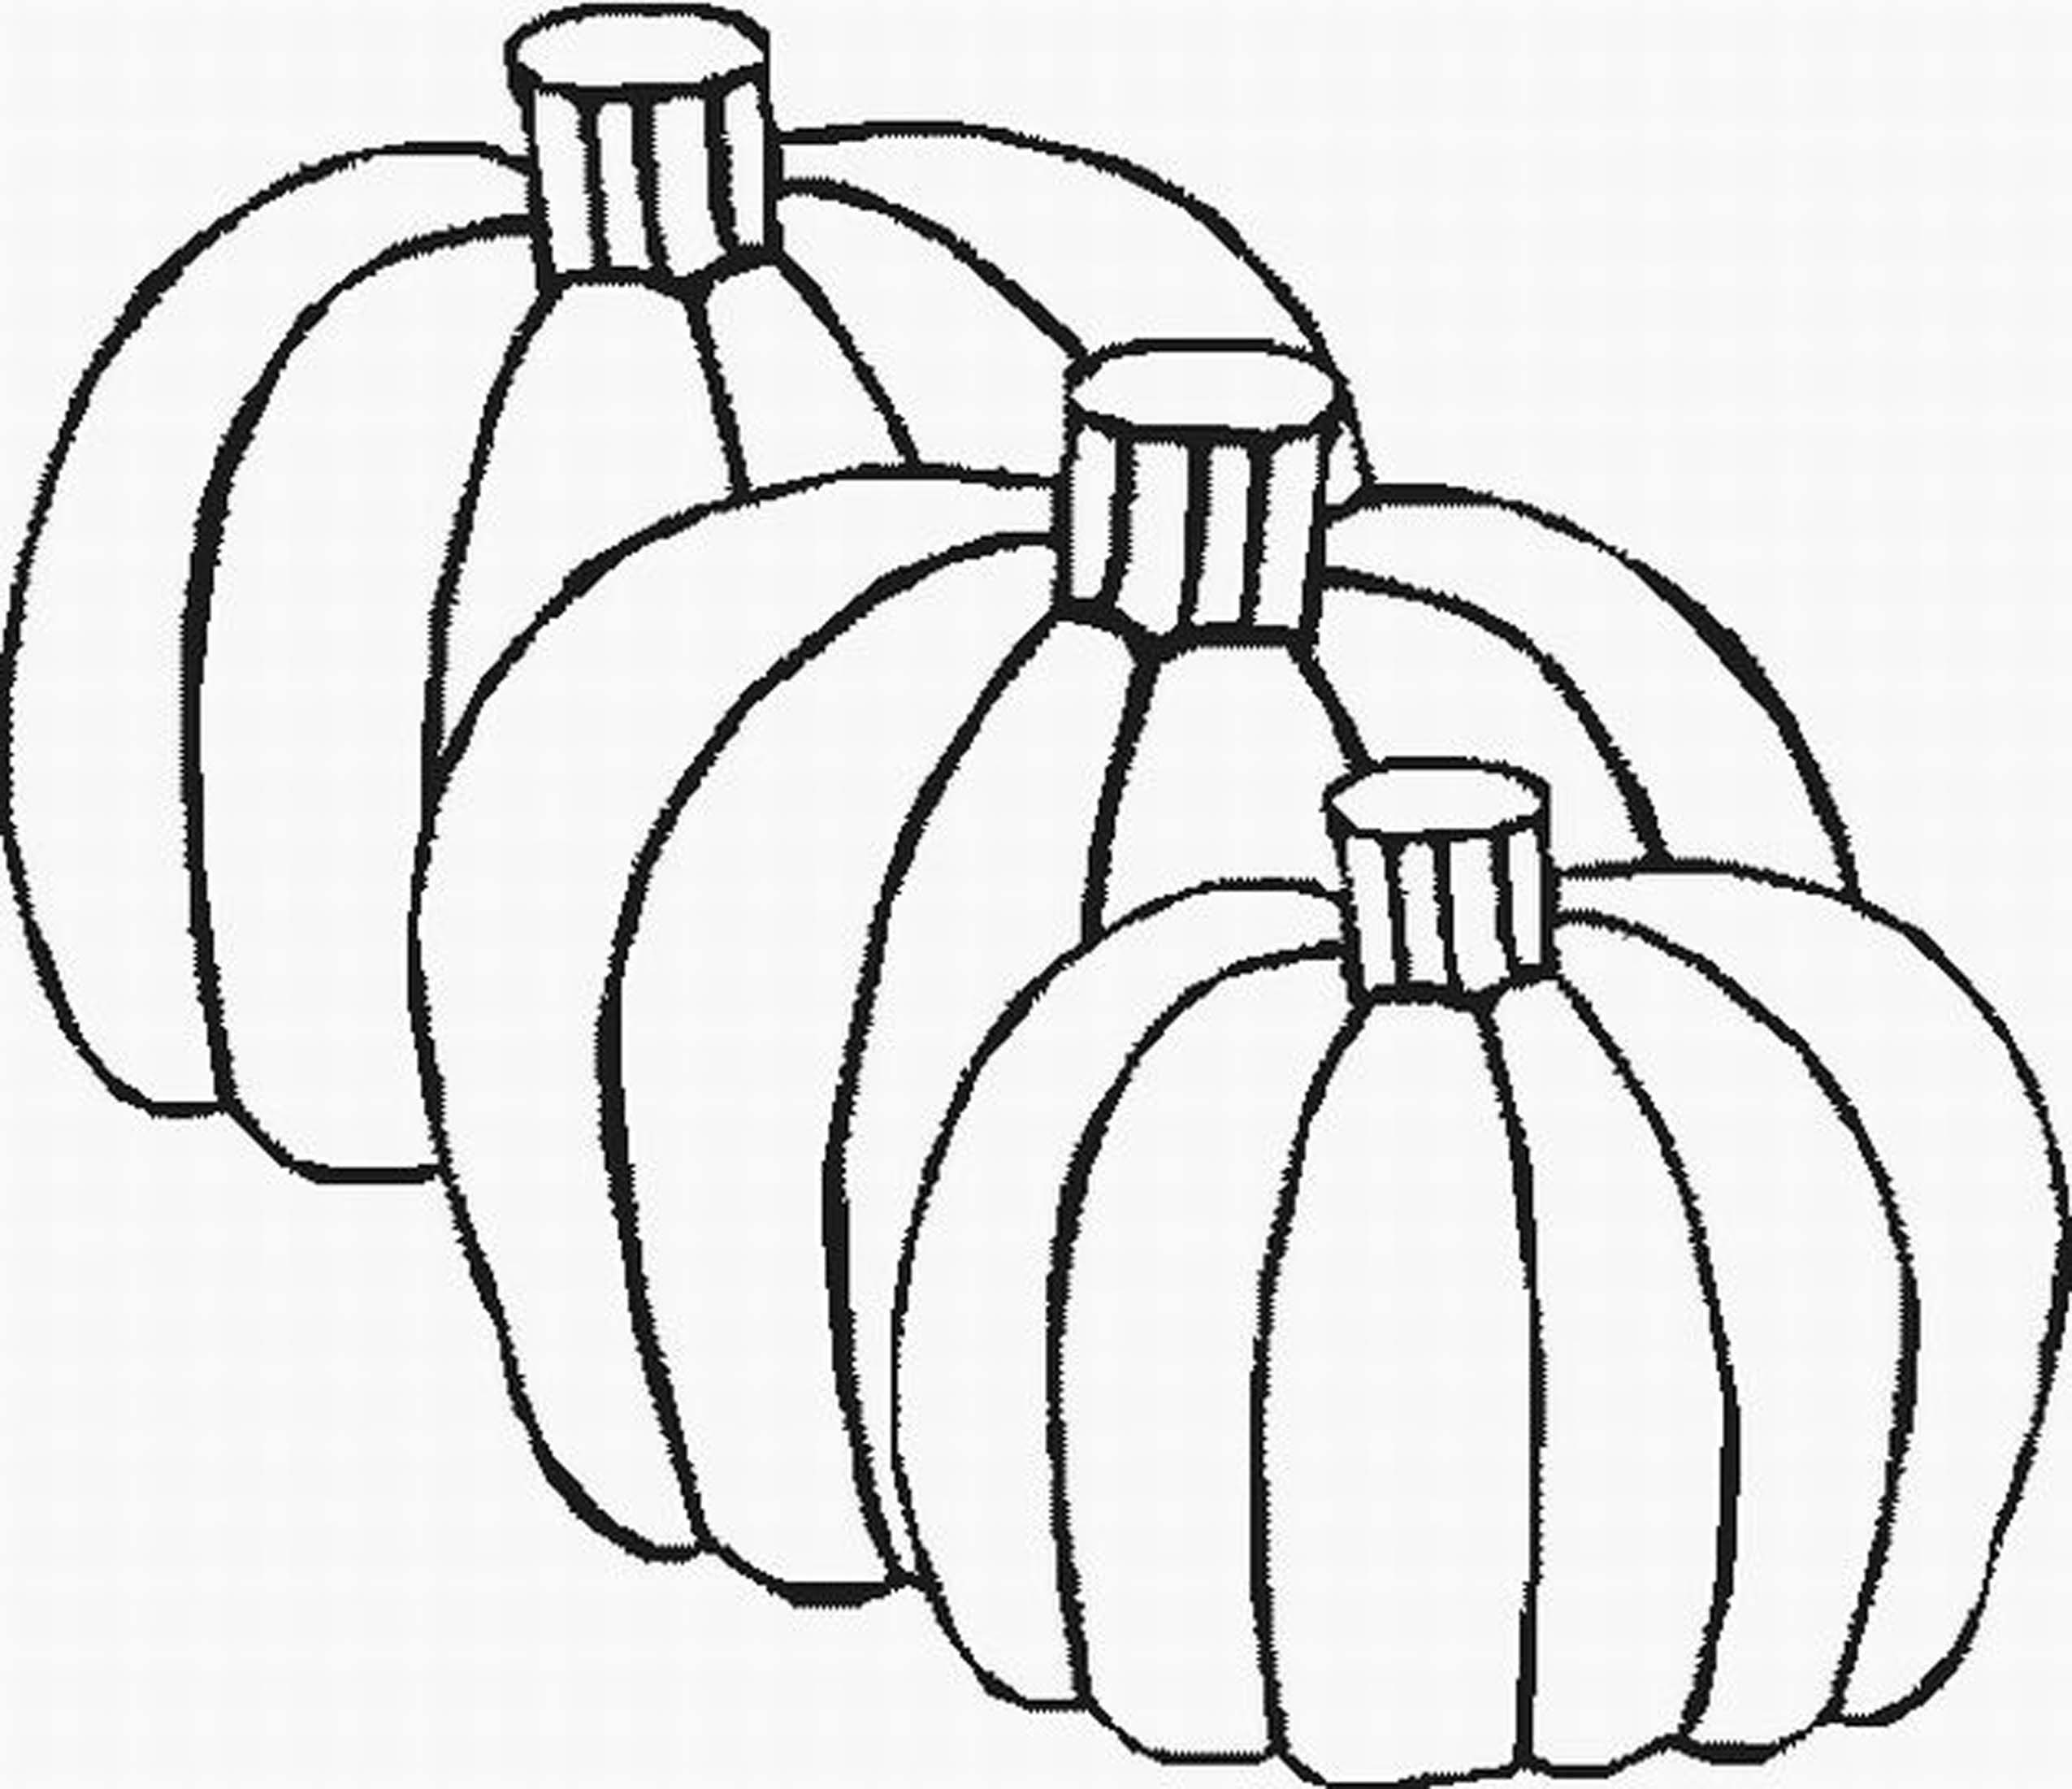 Pumpkin Fall Coloring Pages At Getdrawings Com Free For Personal